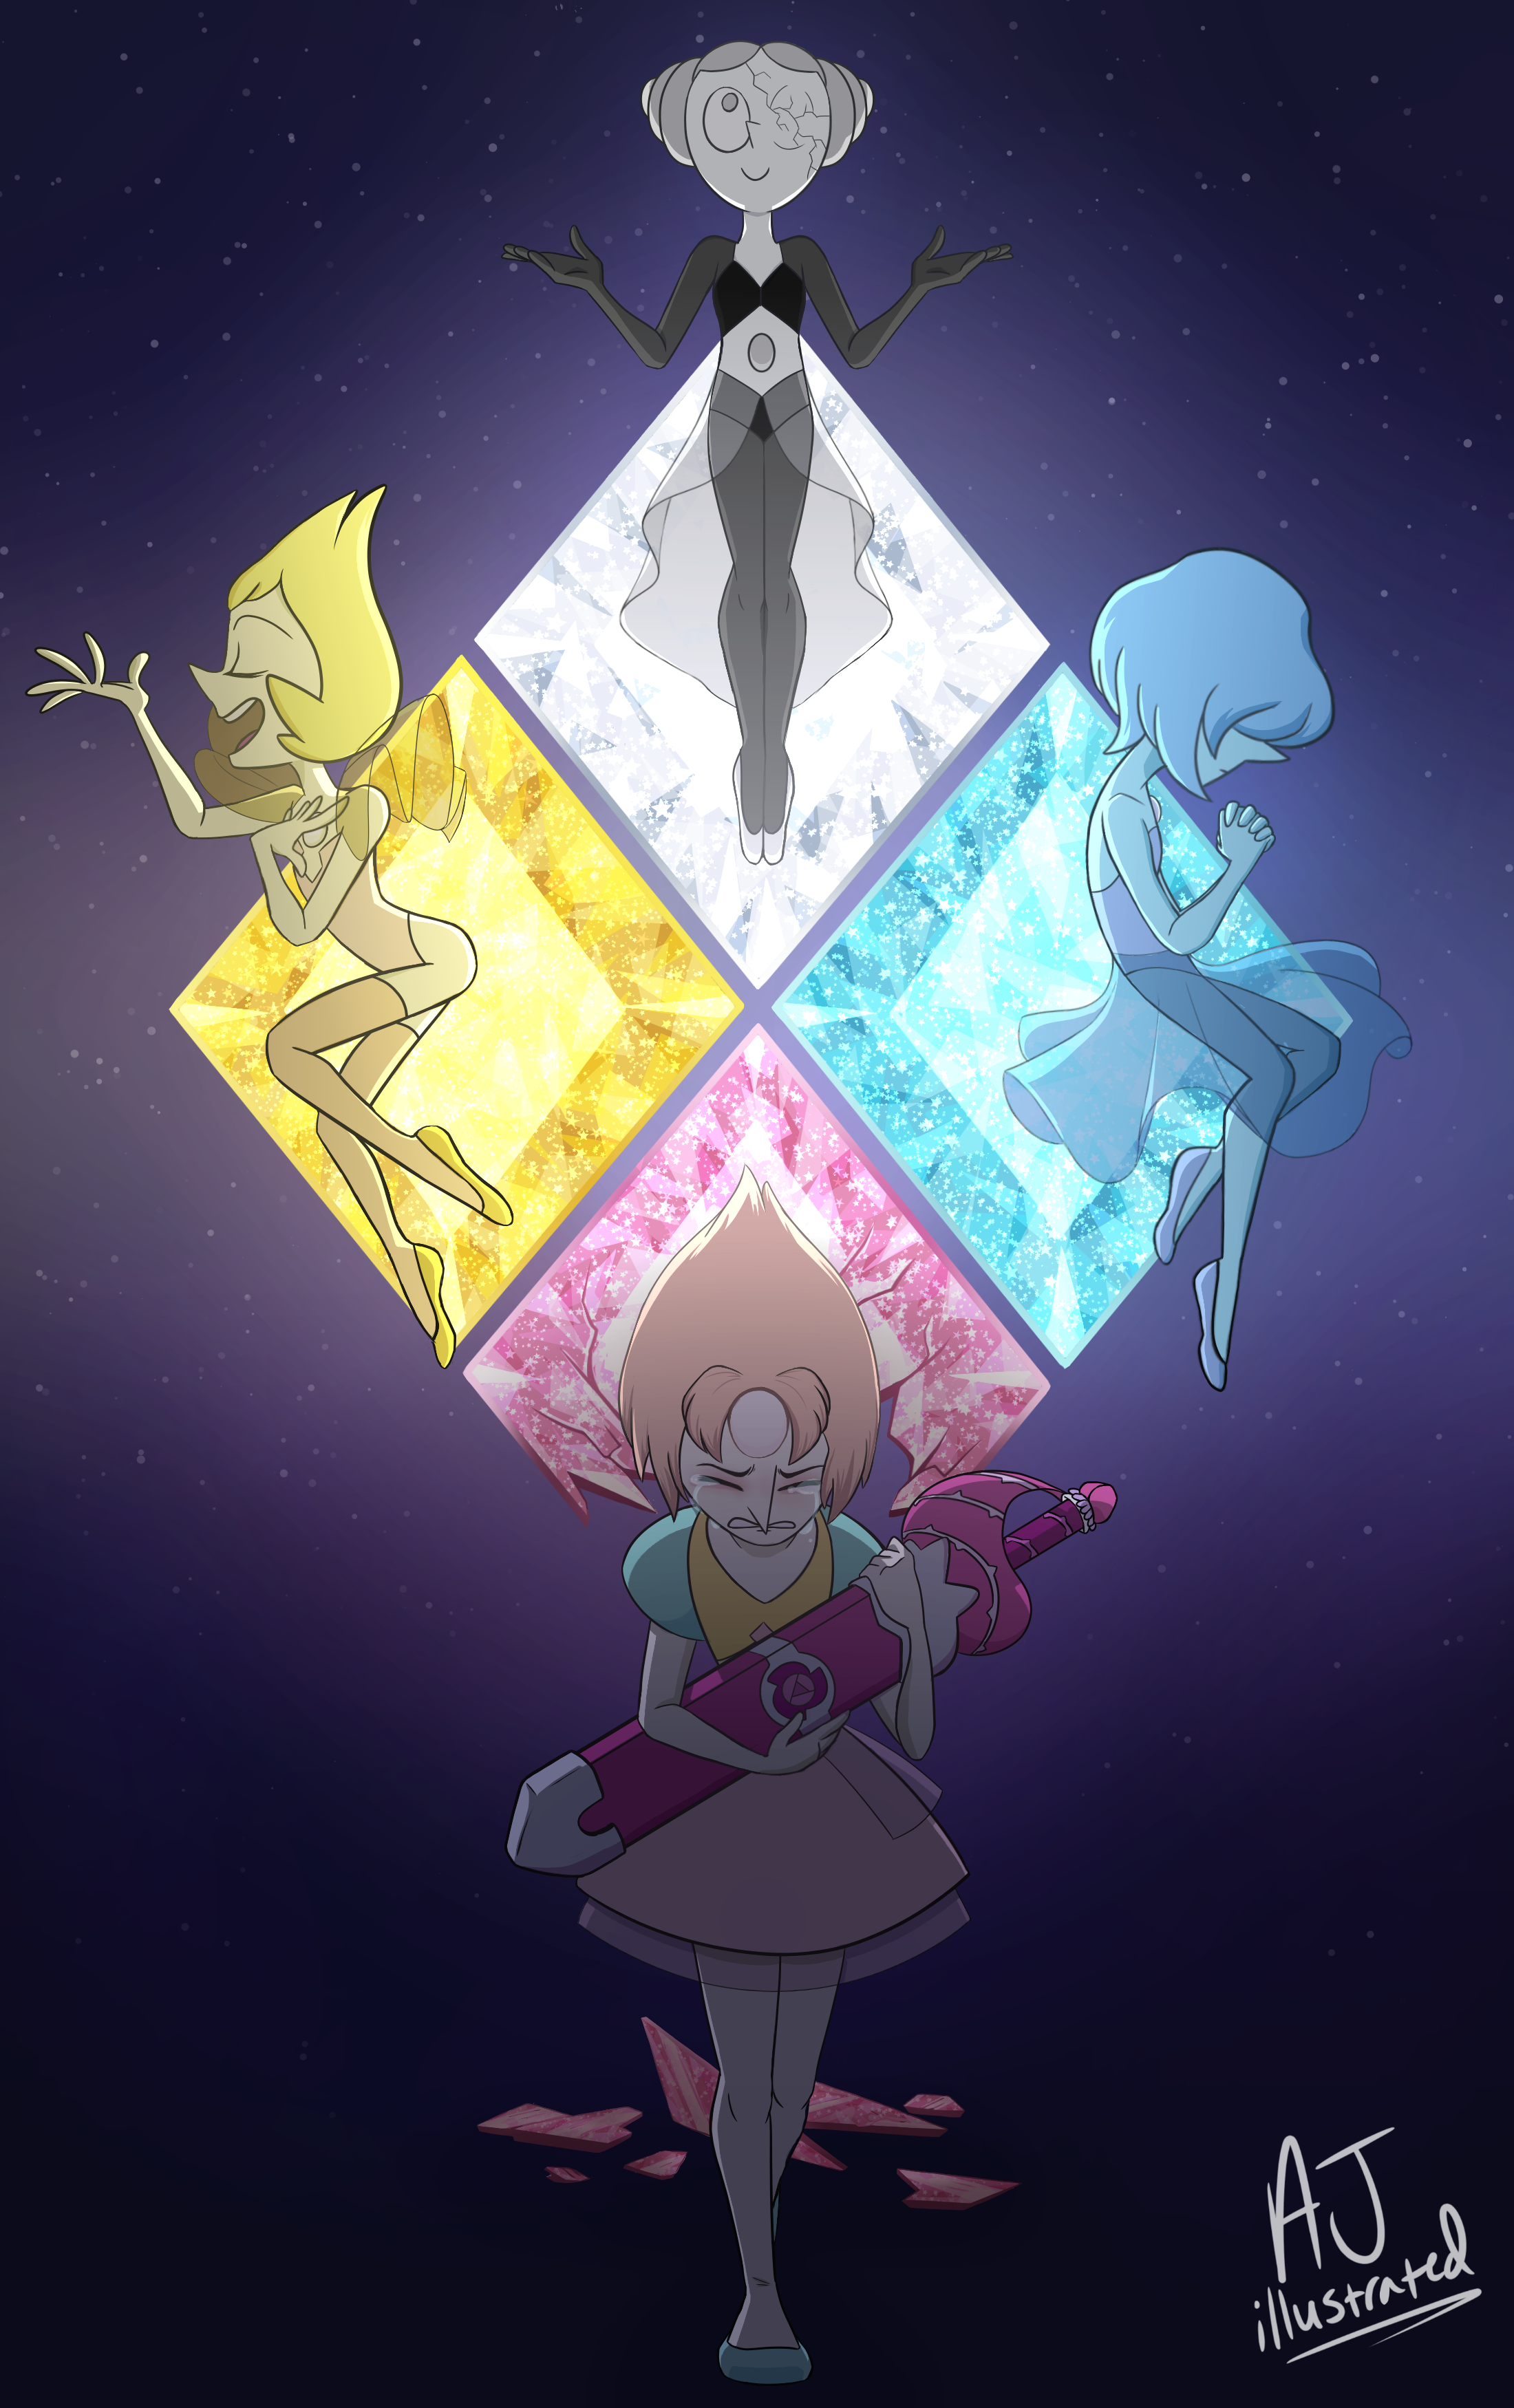 Why Don T You Get A Real Job Steven Universe Fanart Steven Universe Anime Steven Universe Diamond